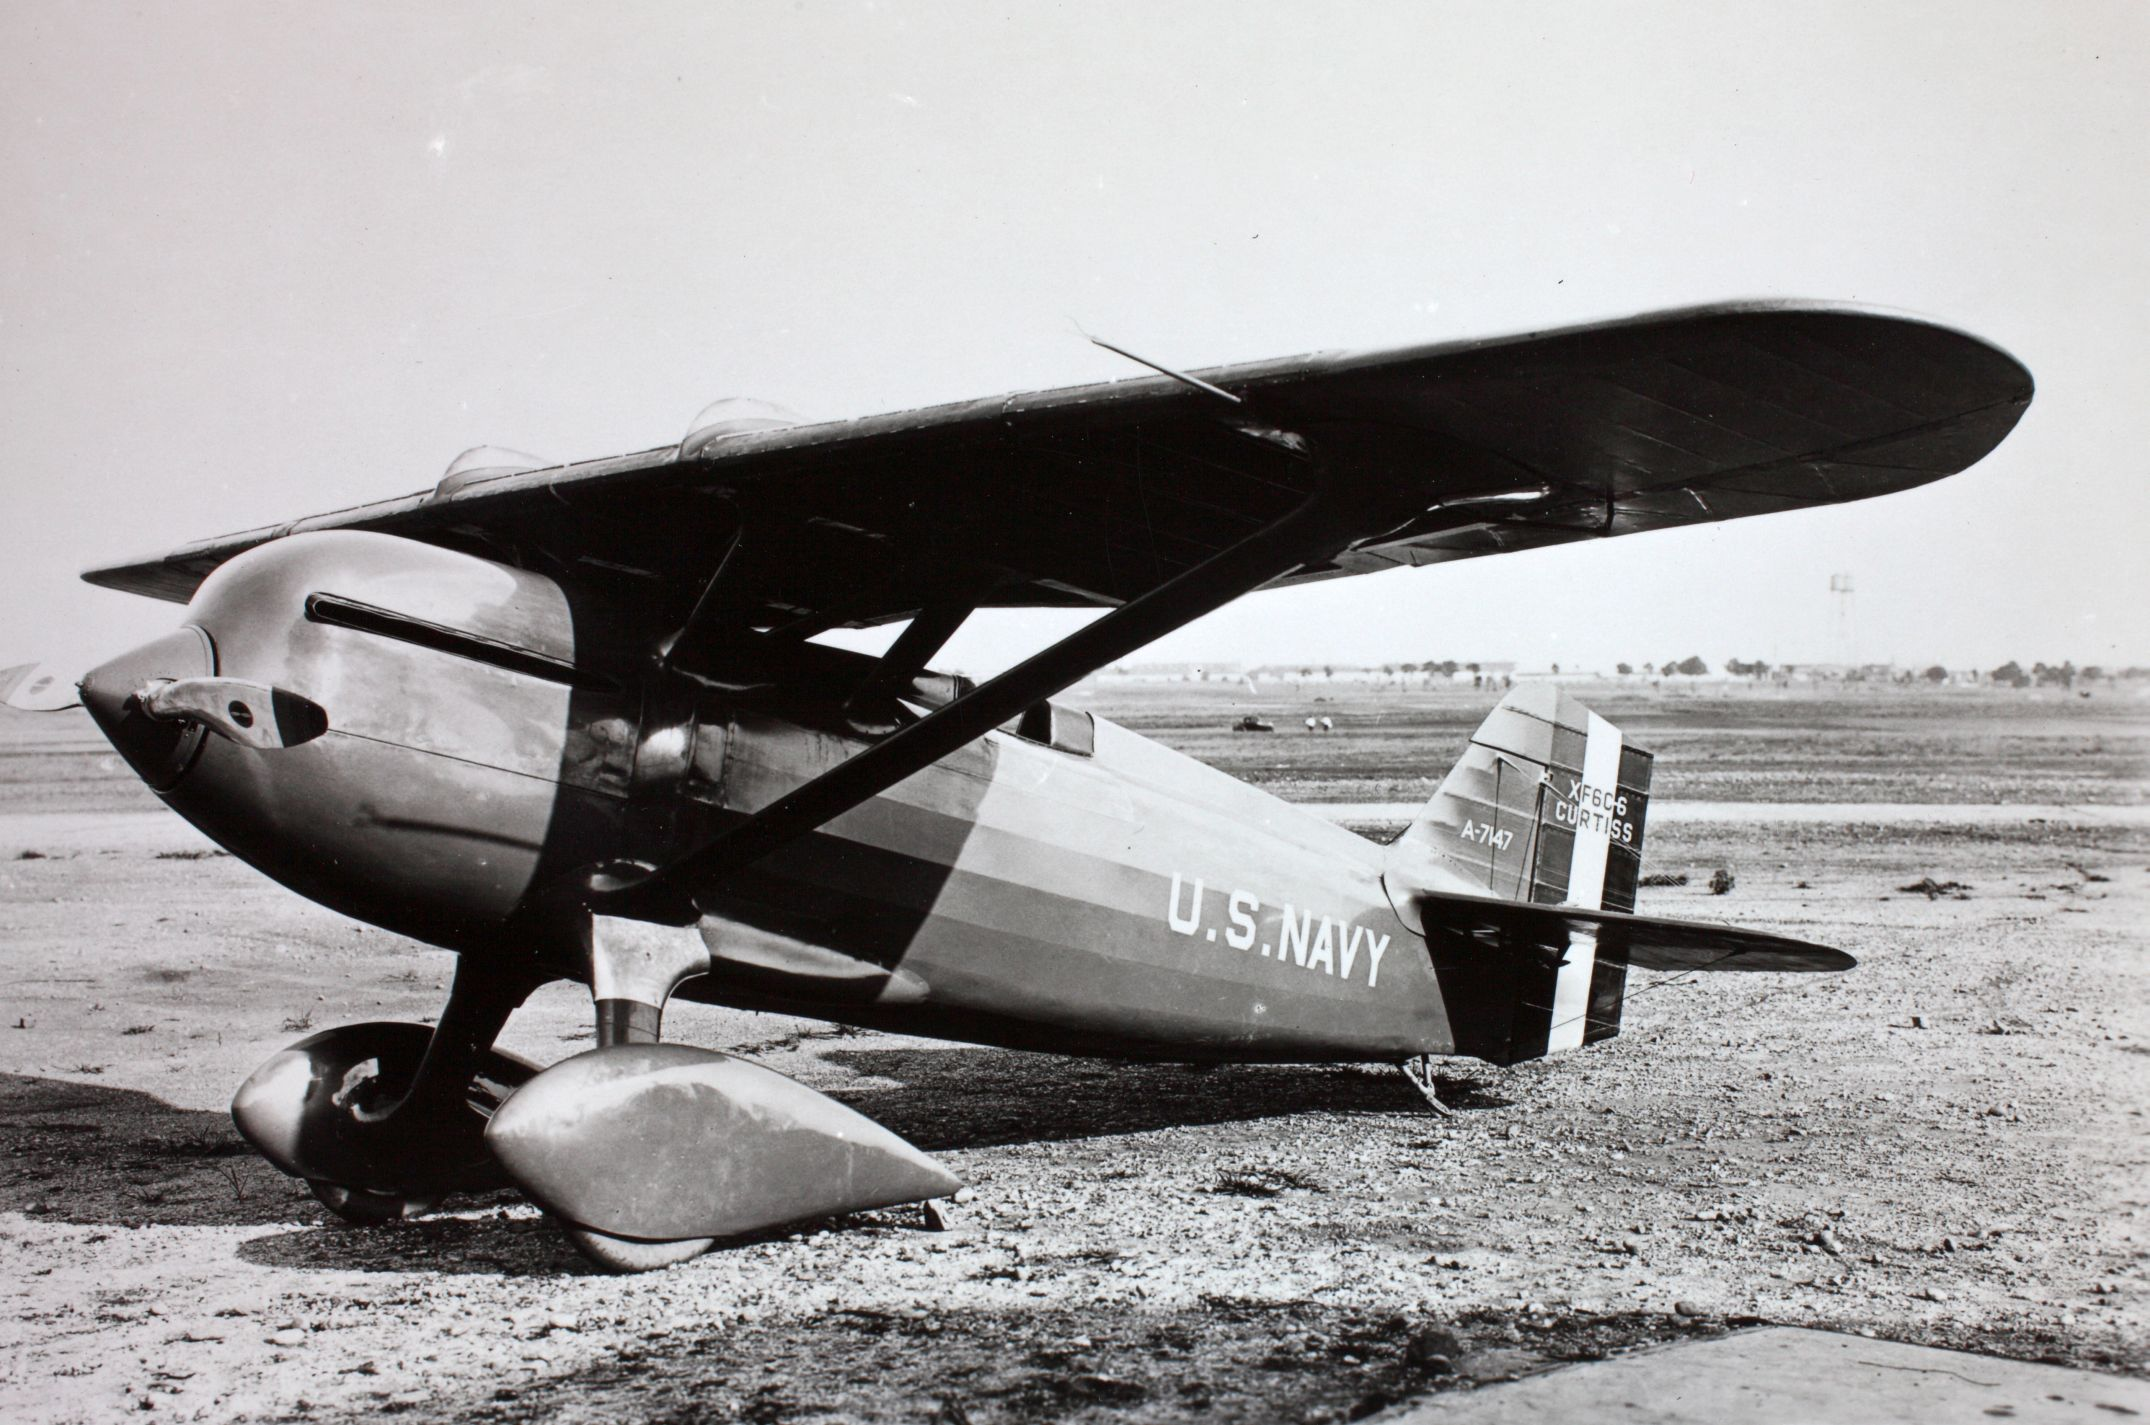 Curtiss-Wright XF6C-6 Navy Racer